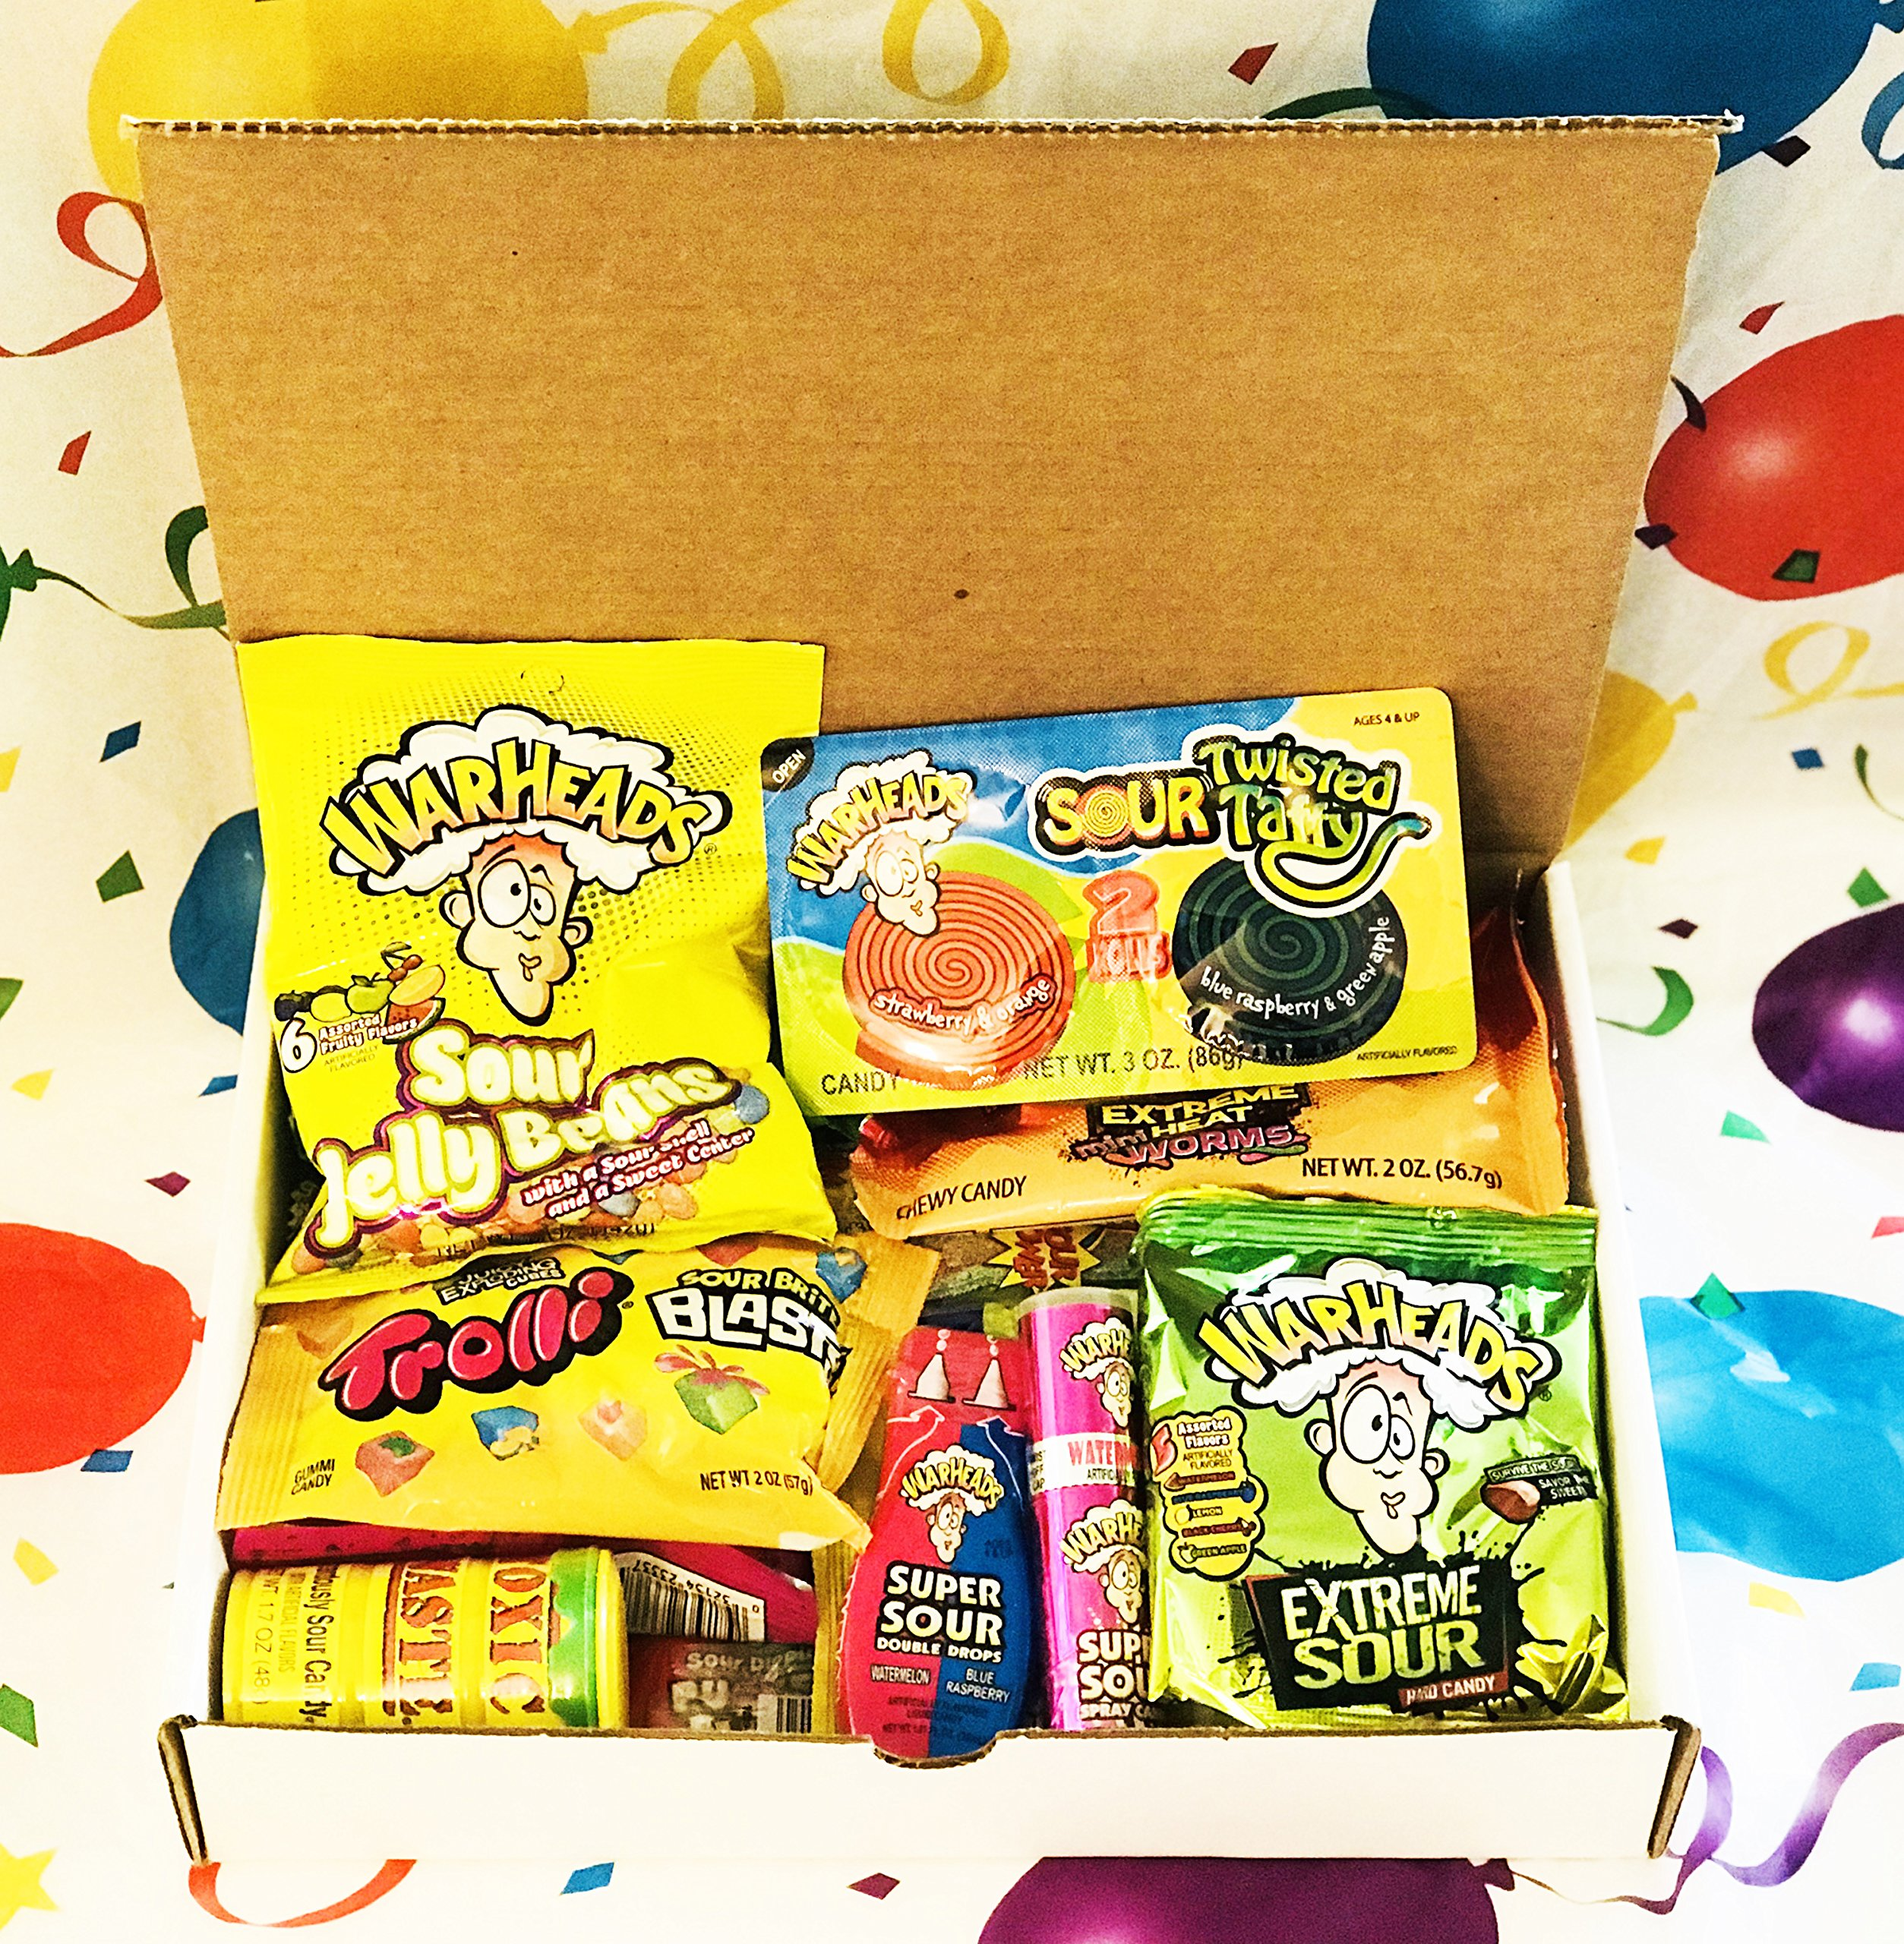 Sour Candy Assortment Gift Box ~ Warheads Extreme Sour Hard Candy, Toxic Waste, Sour Patch Kids, Belts, Spray, Straws, Airheads Xtreme Bites, Brite Blasts, Pop Rocks Dip, Pucker Pack Powder, and more by Woodstock Candy (Image #4)